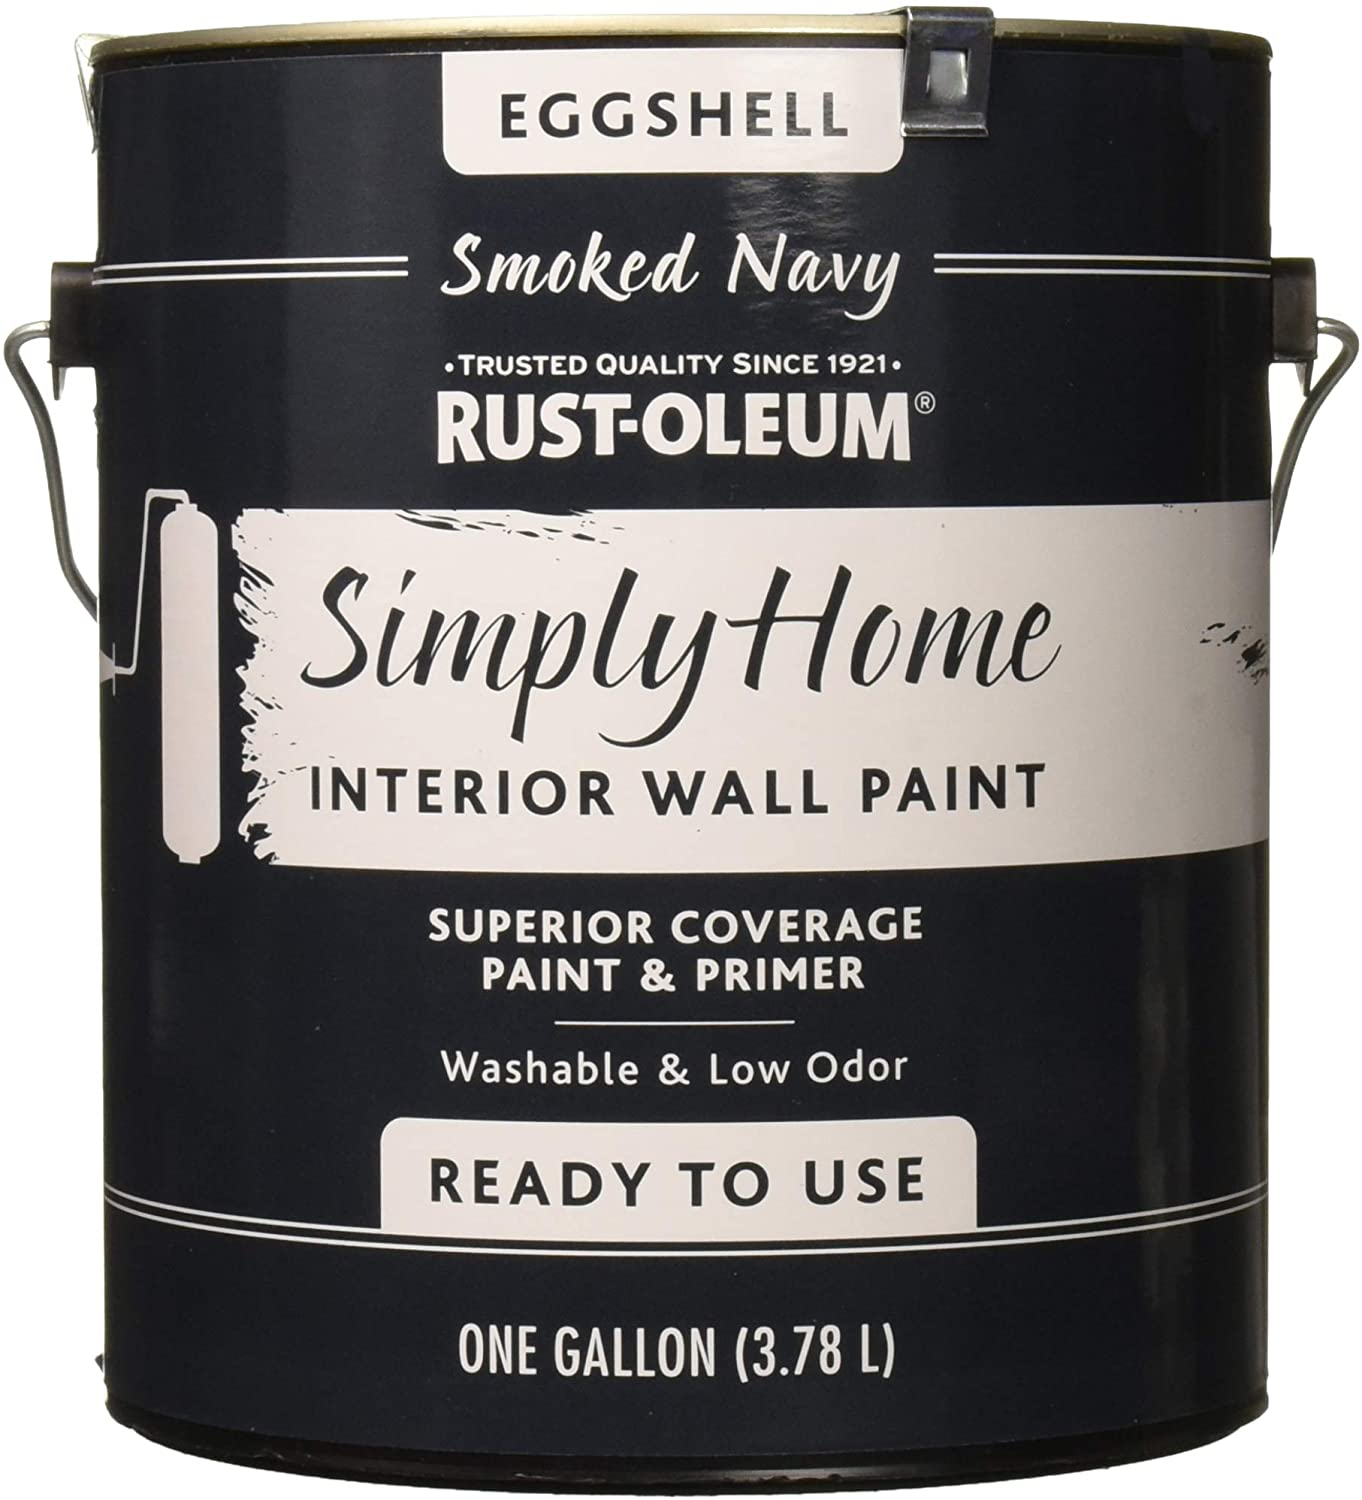 Rust-Oleum Simply Home Interior Wall Paint 332145 Simply Home Eggshell Interior Wall Paint, Smoked Navy